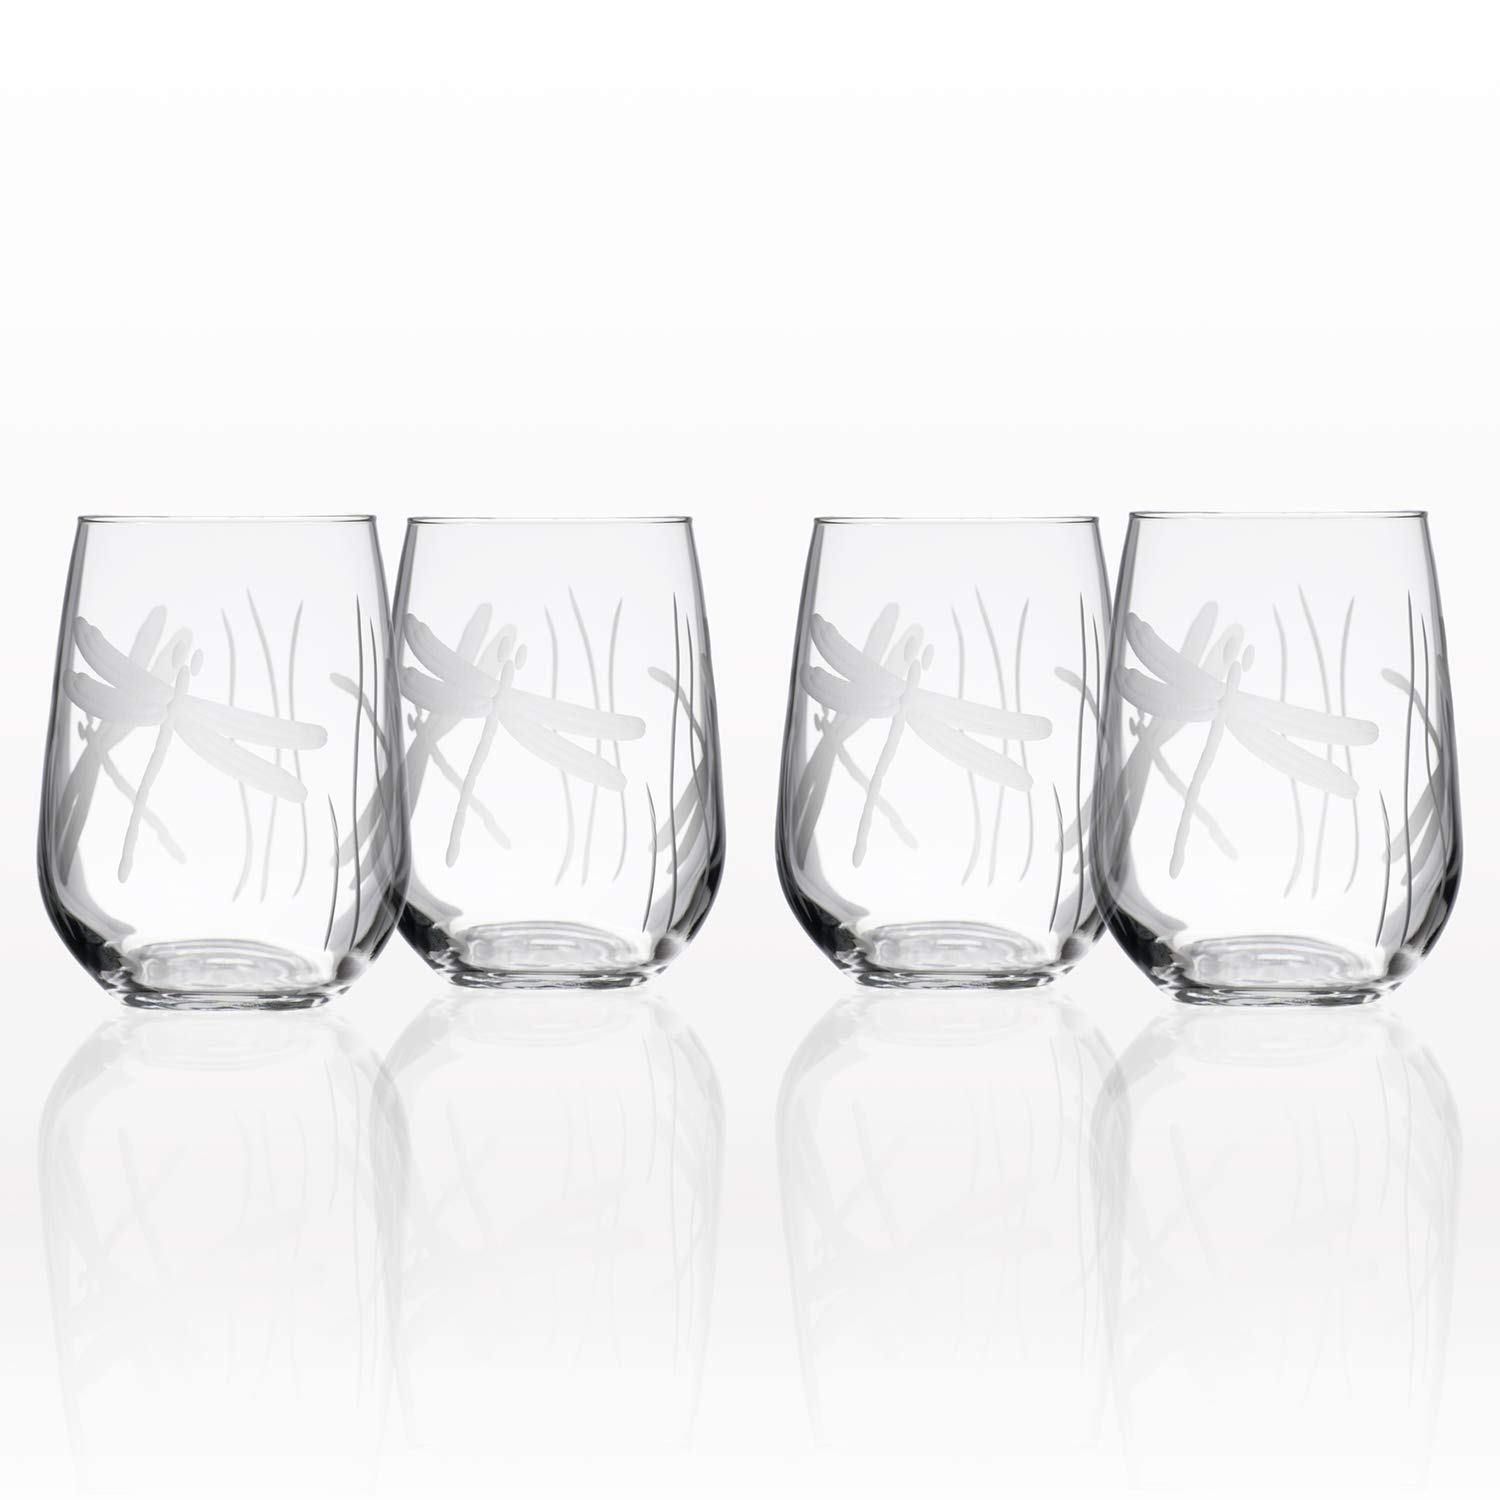 Rolf Glass Dragonfly Stemless Wine Glass 17 ounces, Set of 4